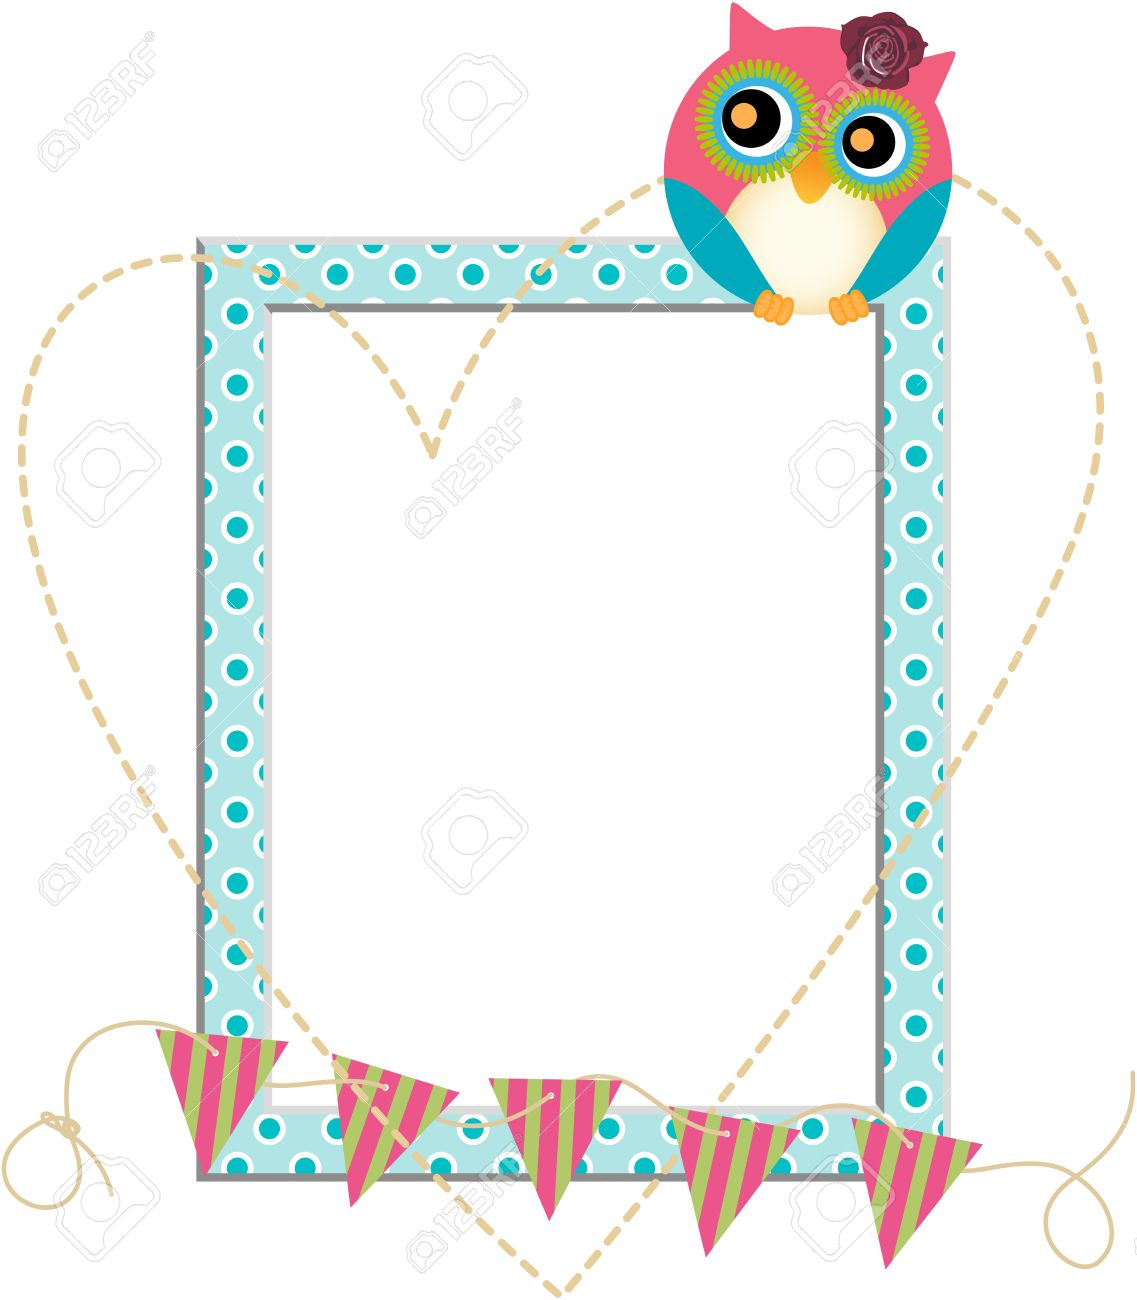 Owl Frame Royalty Free Cliparts, Vectors, And Stock Illustration ...